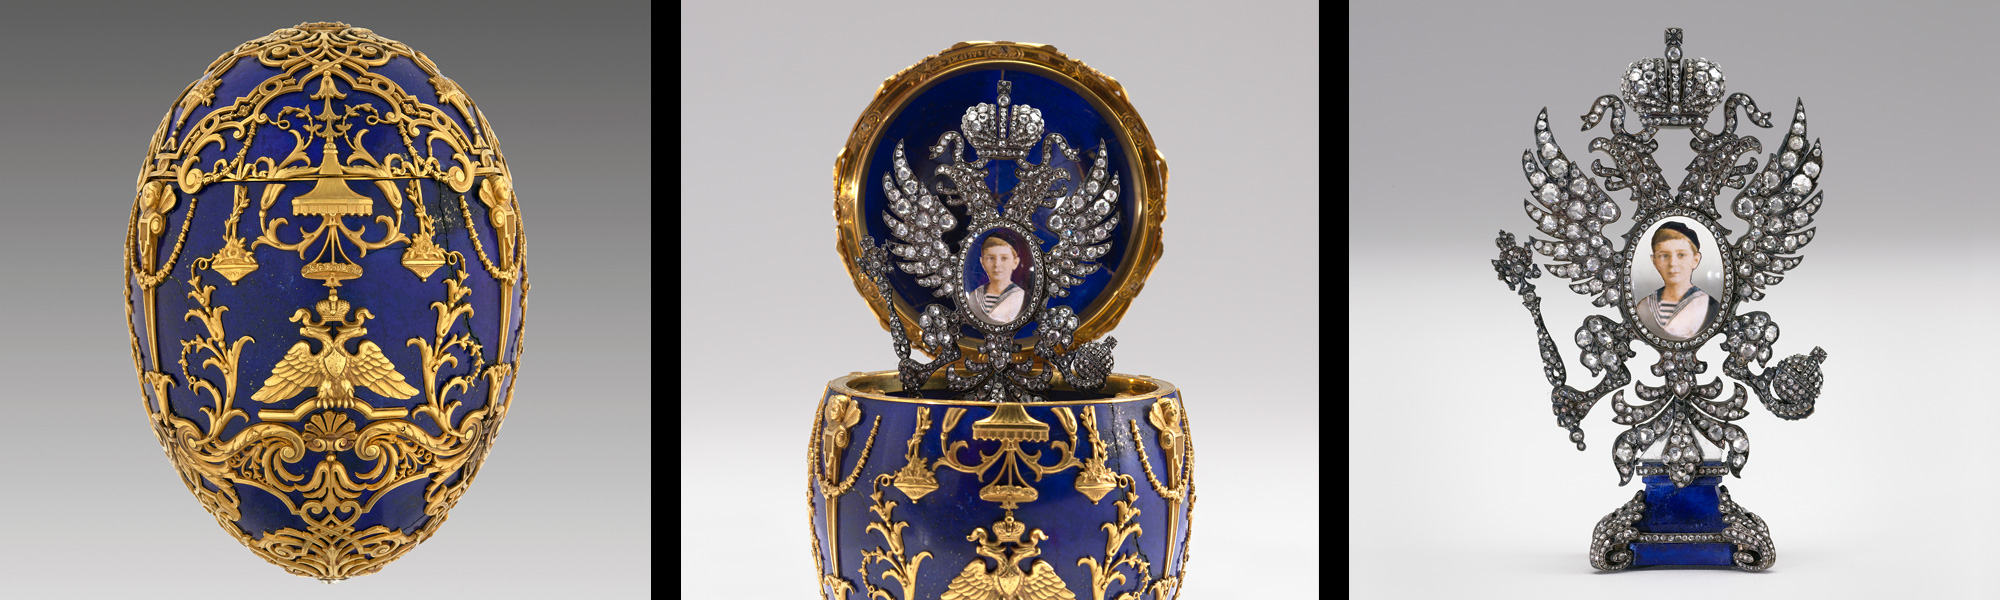 Exh fabulous faberg jeweller to the czars the montreal museum of imperial cesarevich easter egg by faberg firm 1912 photo katherine wetzel virginia museum negle Gallery